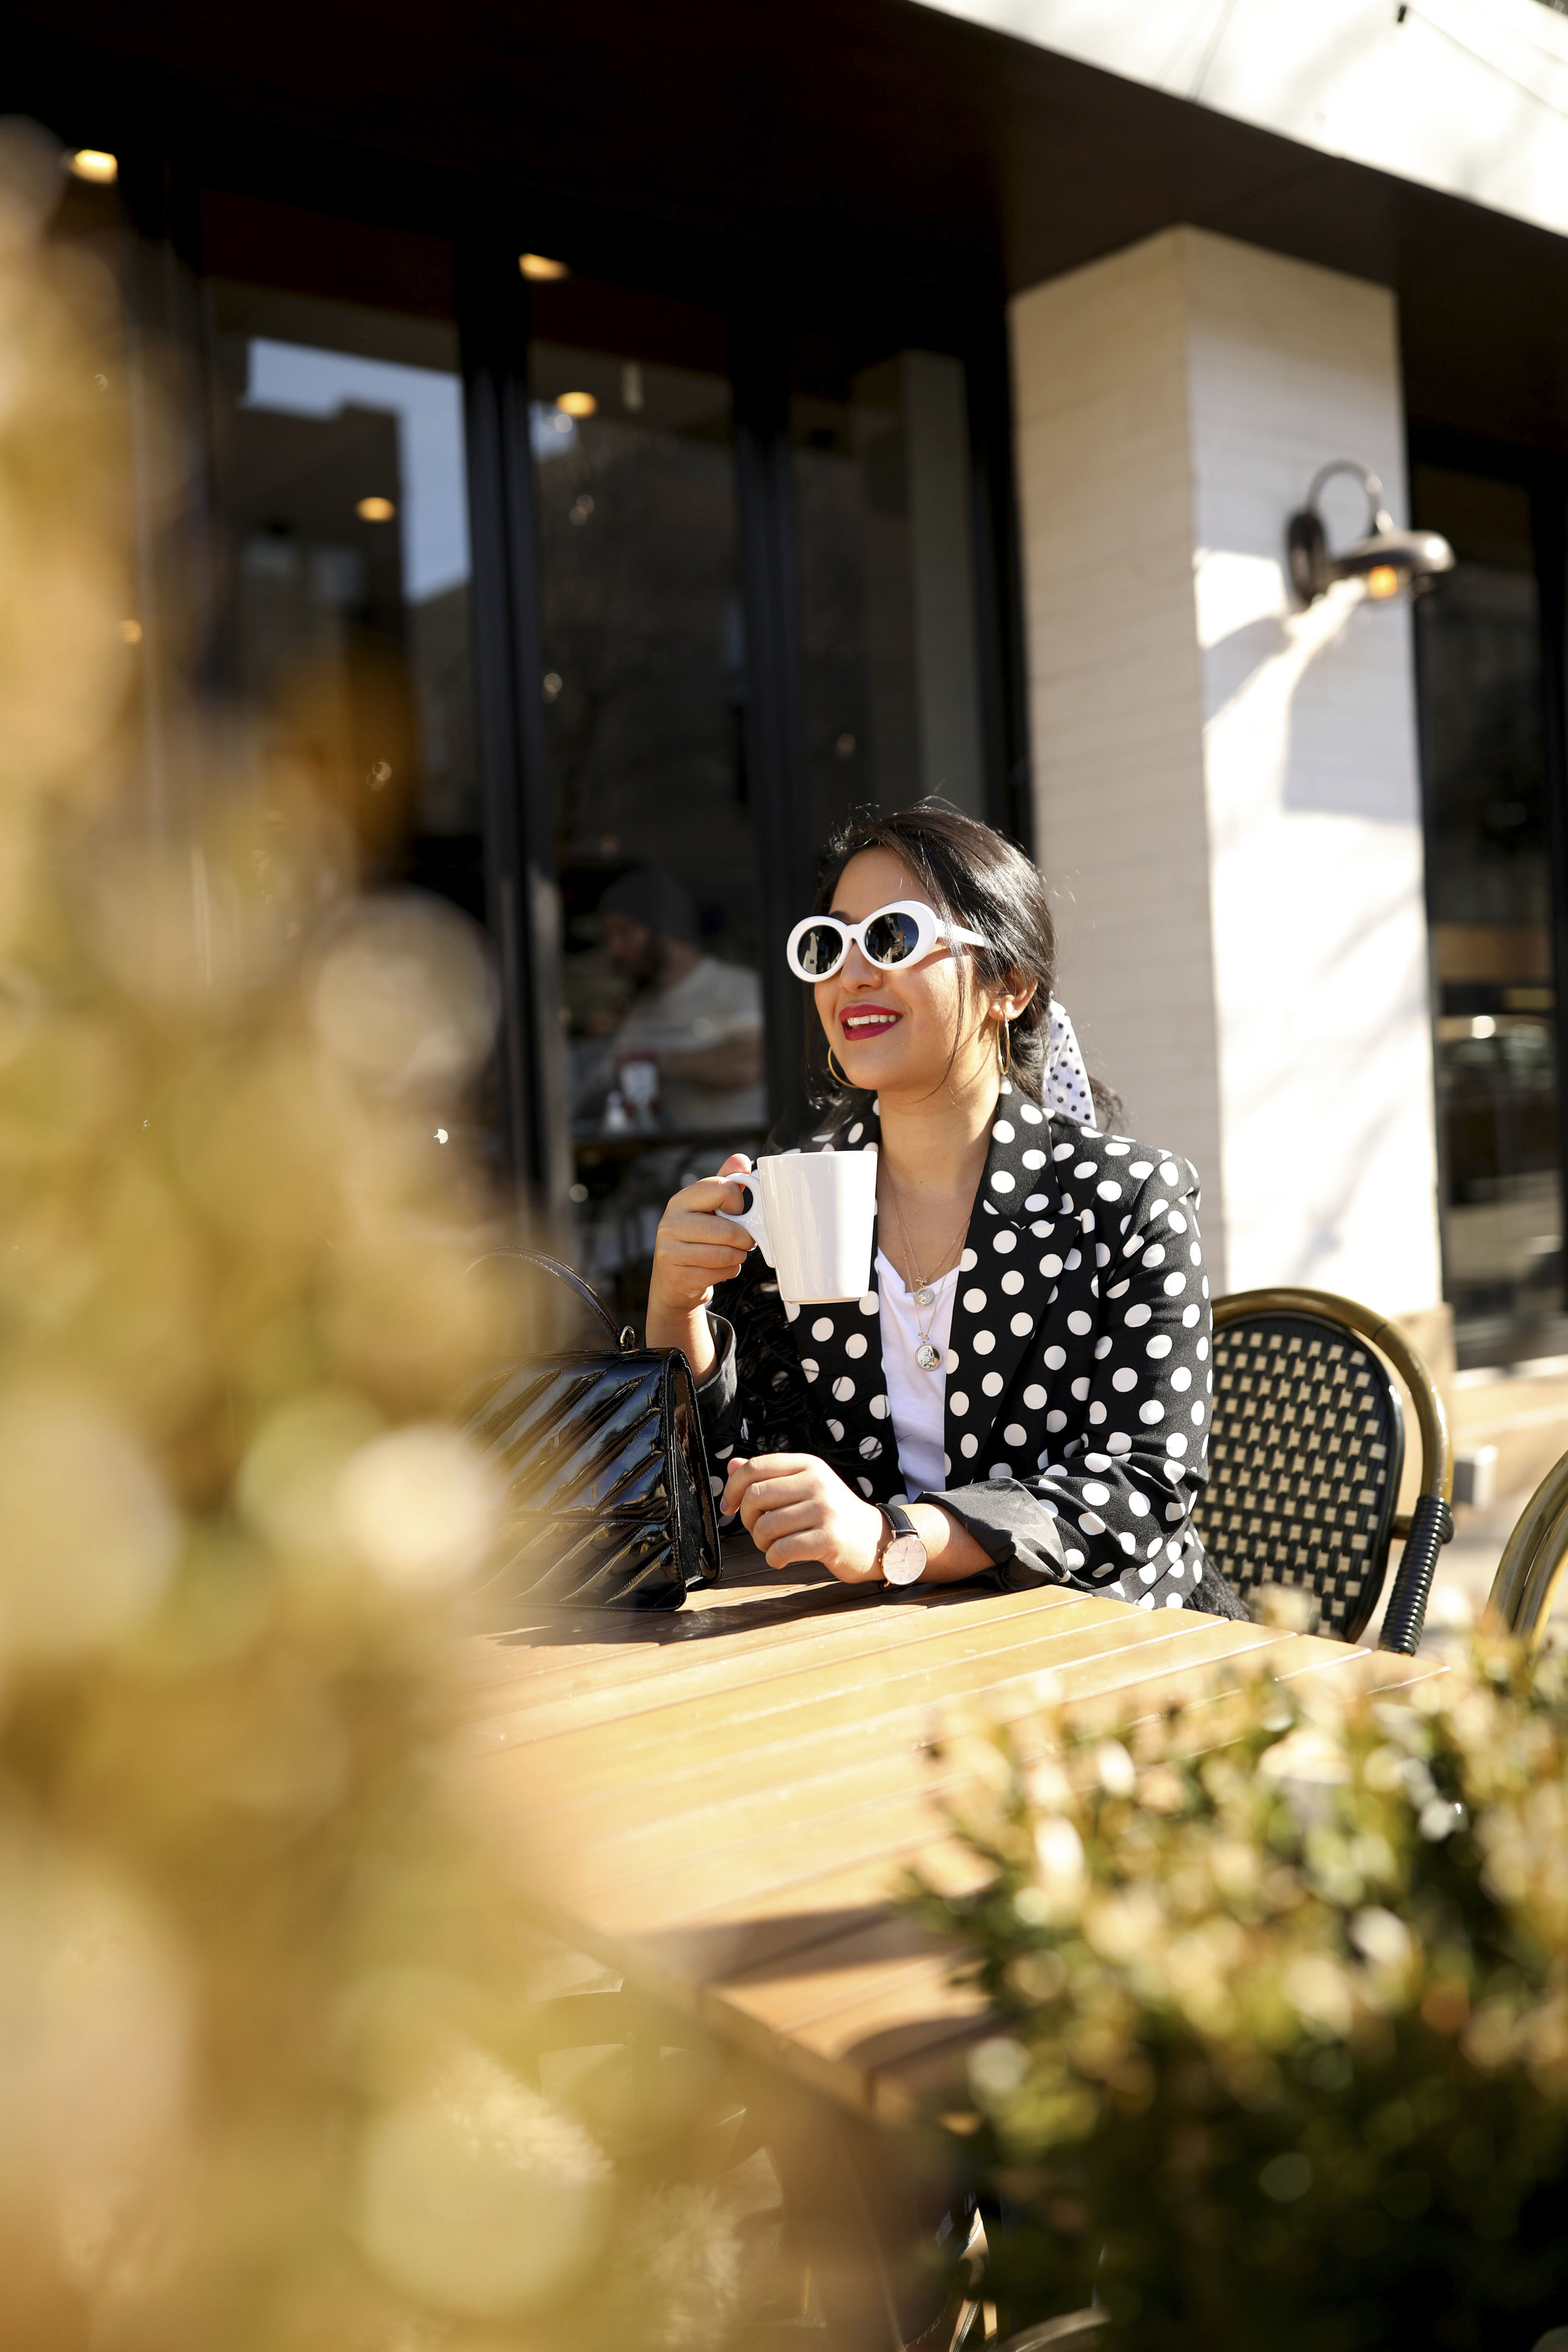 Black and White Polka Dot Outfit Parisian Style_ 1.jpg